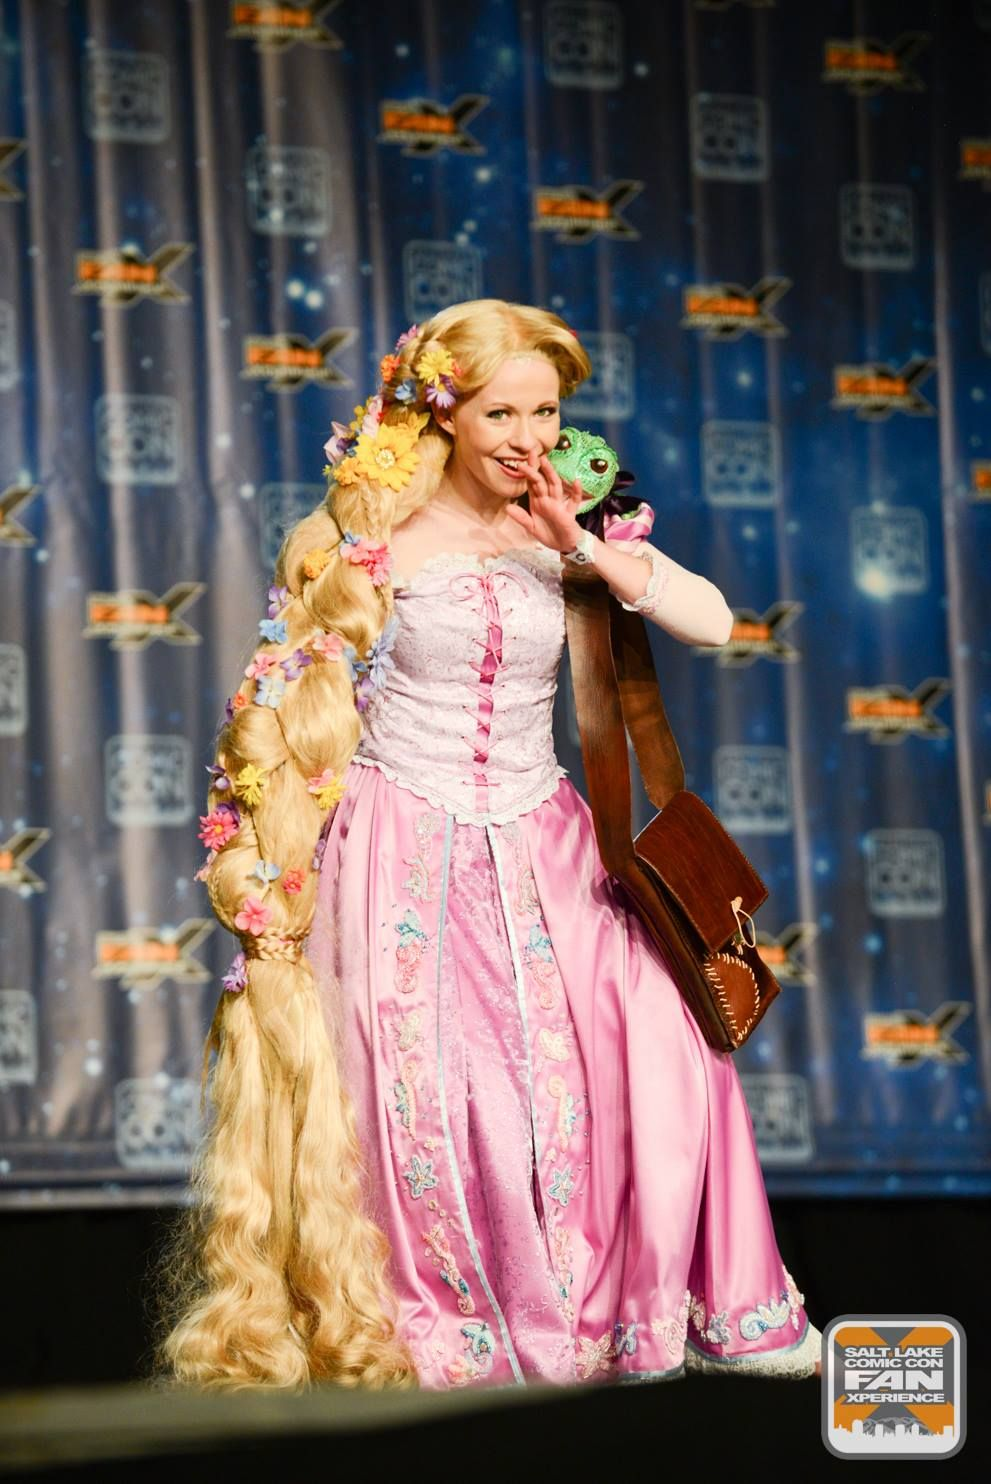 #FANX16 Cosplay Contest - 1st Place Master Category Kimberly Motteshard as Rapunzel  sc 1 st  Pinterest & FANX16 Cosplay Contest - 1st Place Master Category Kimberly ...